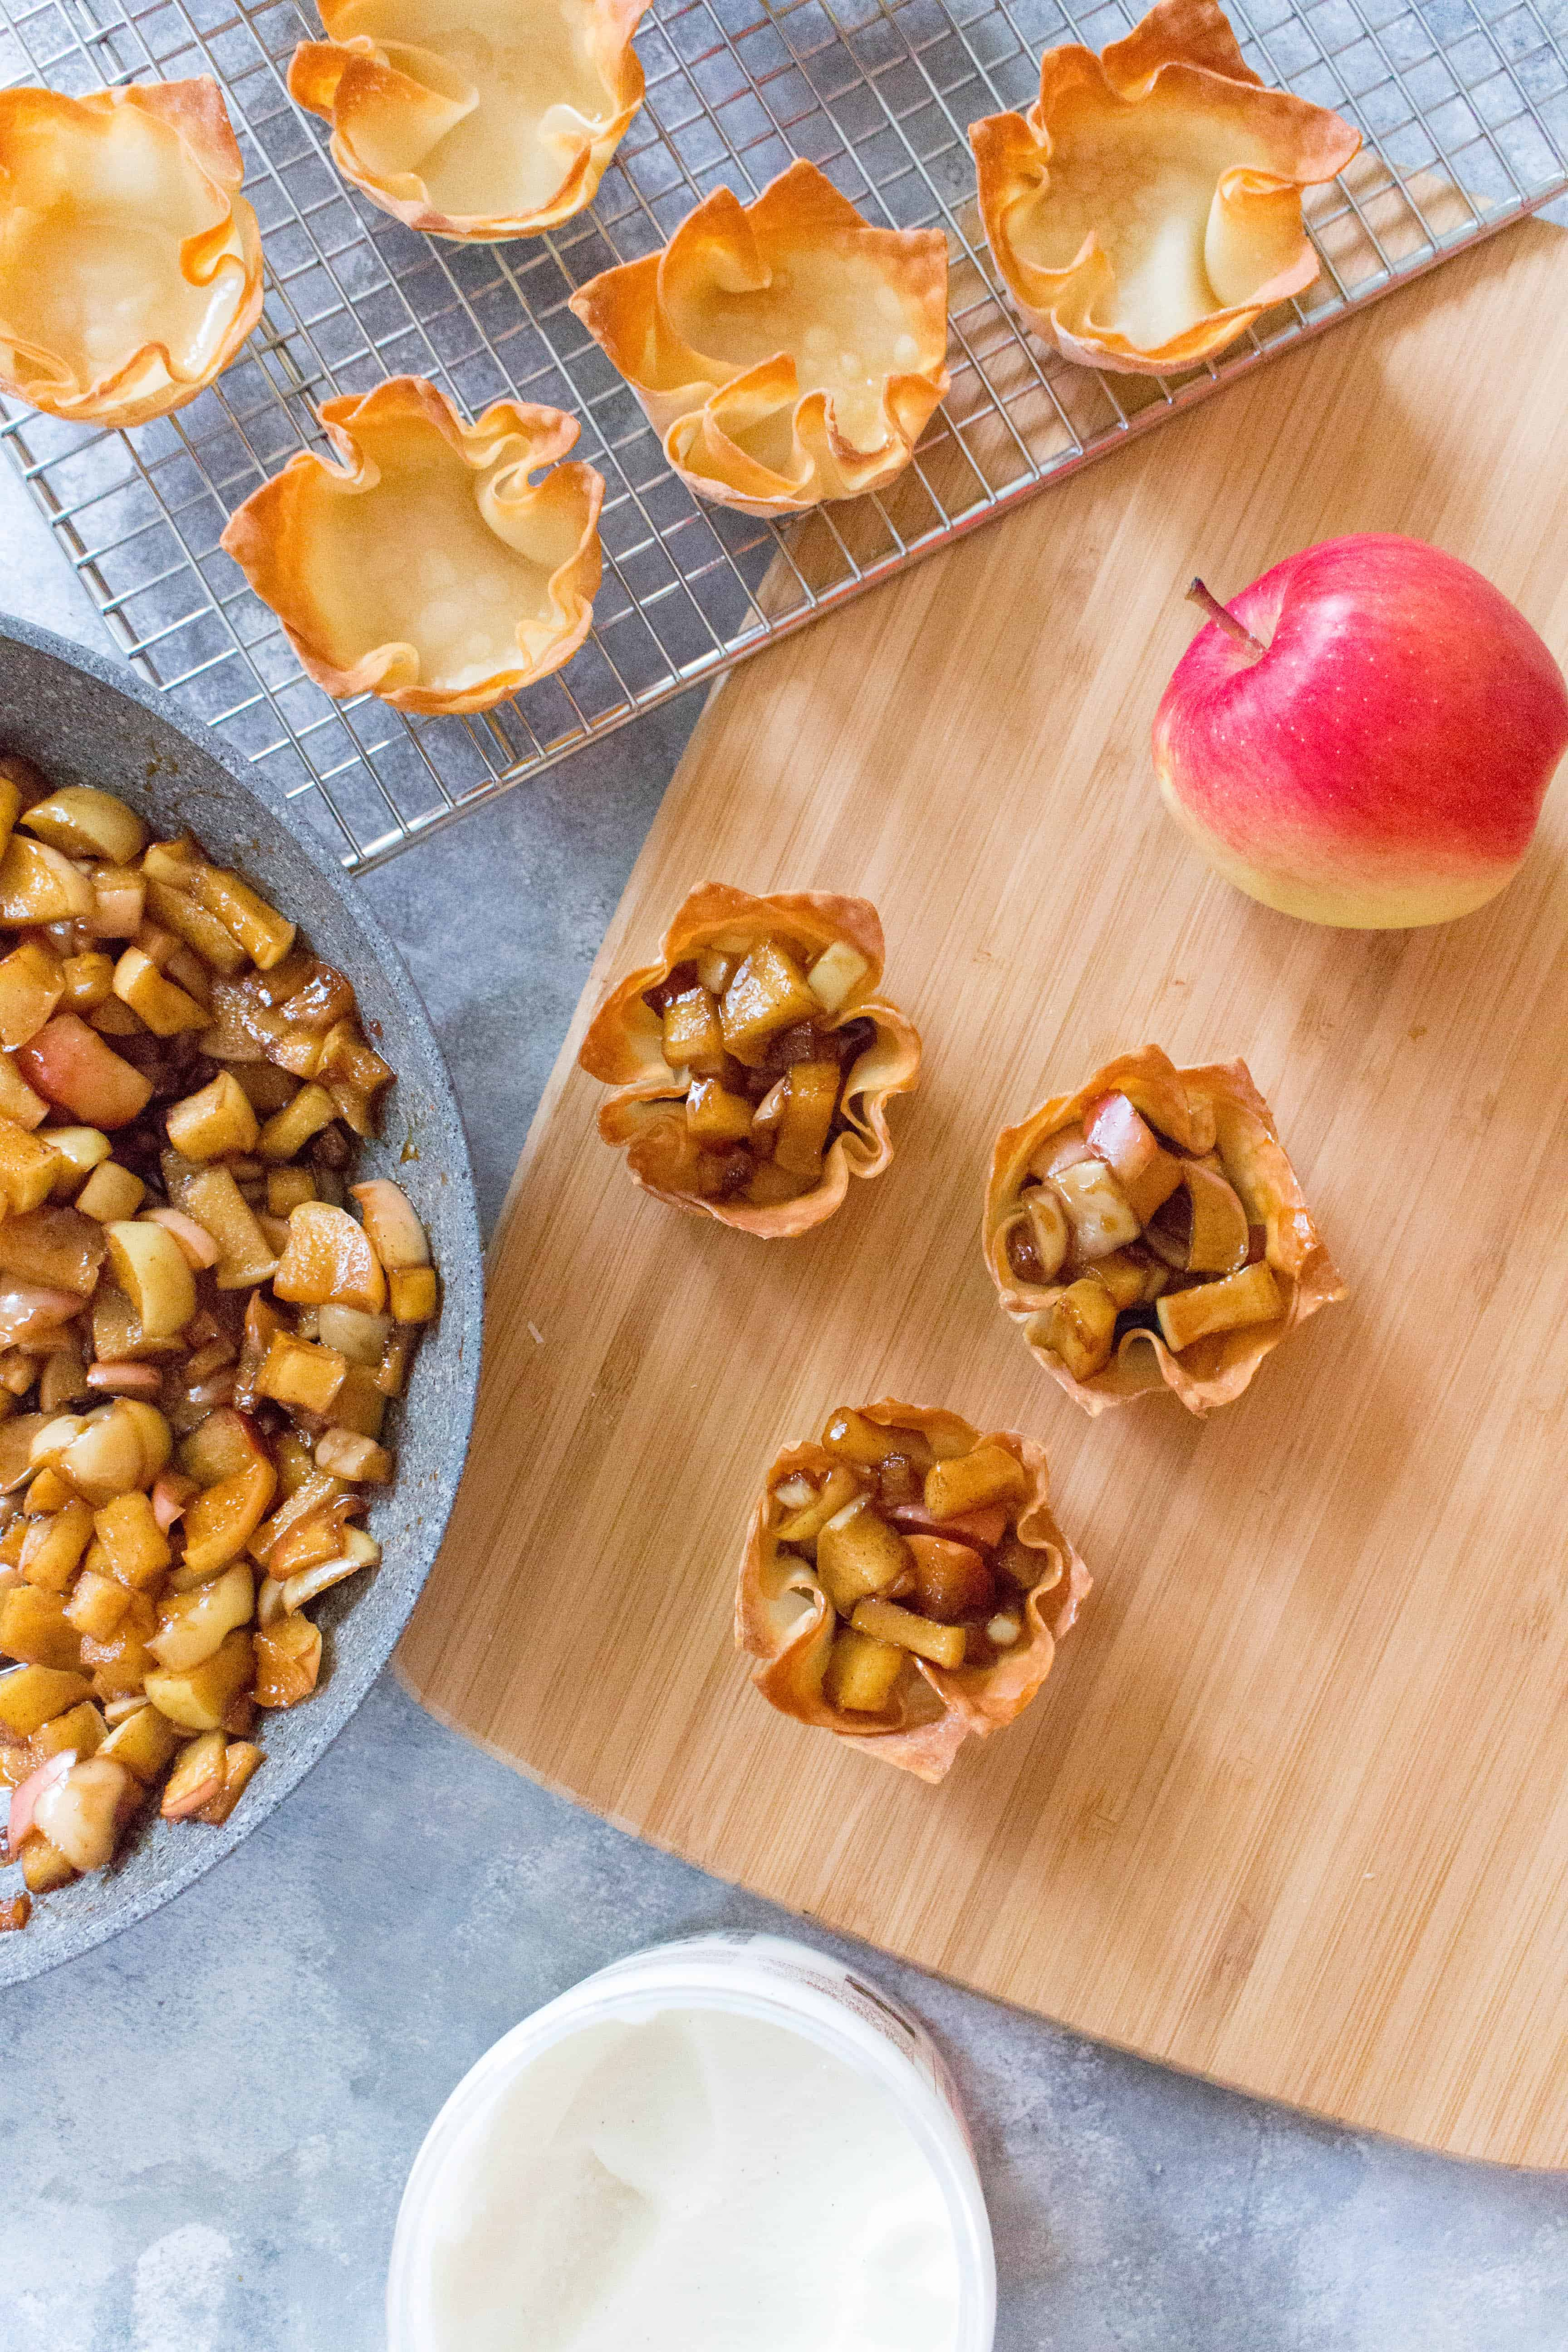 Take a fun new twist on your traditional apple pie with this wonton apple pie. Plus, individual servings means less time spent cutting and more time eating!